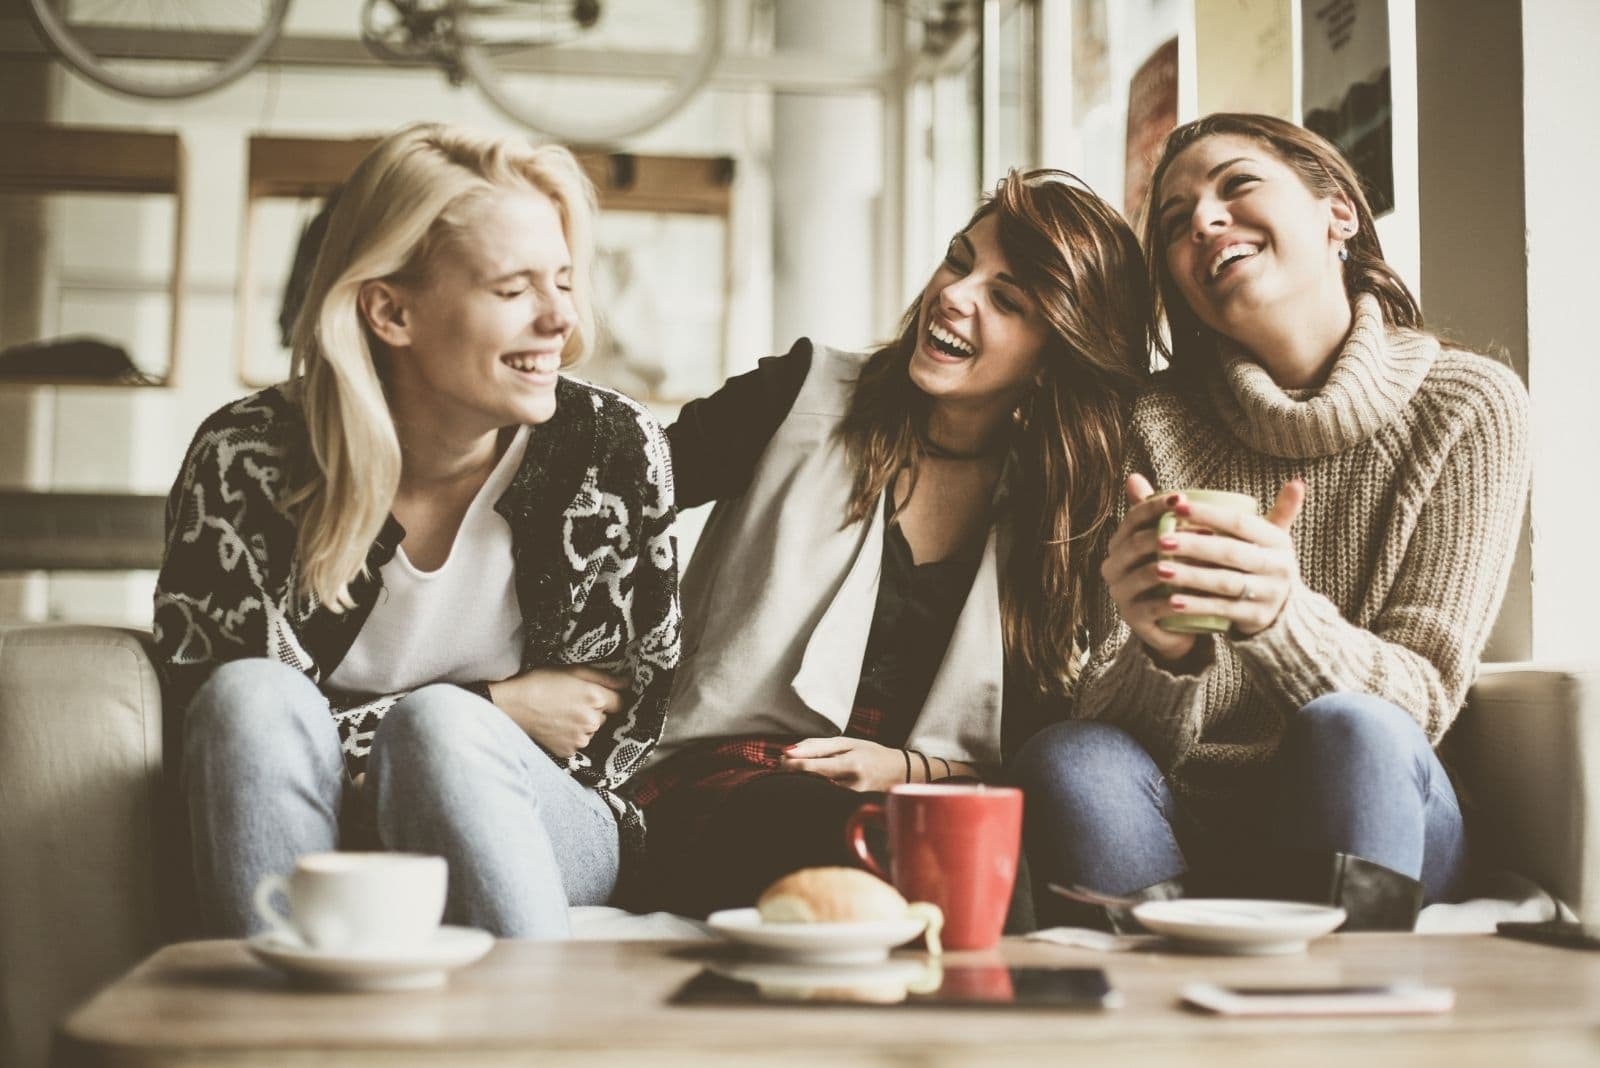 group of friends laughing cheerfully sitting in the couch and having coffee inside the living room